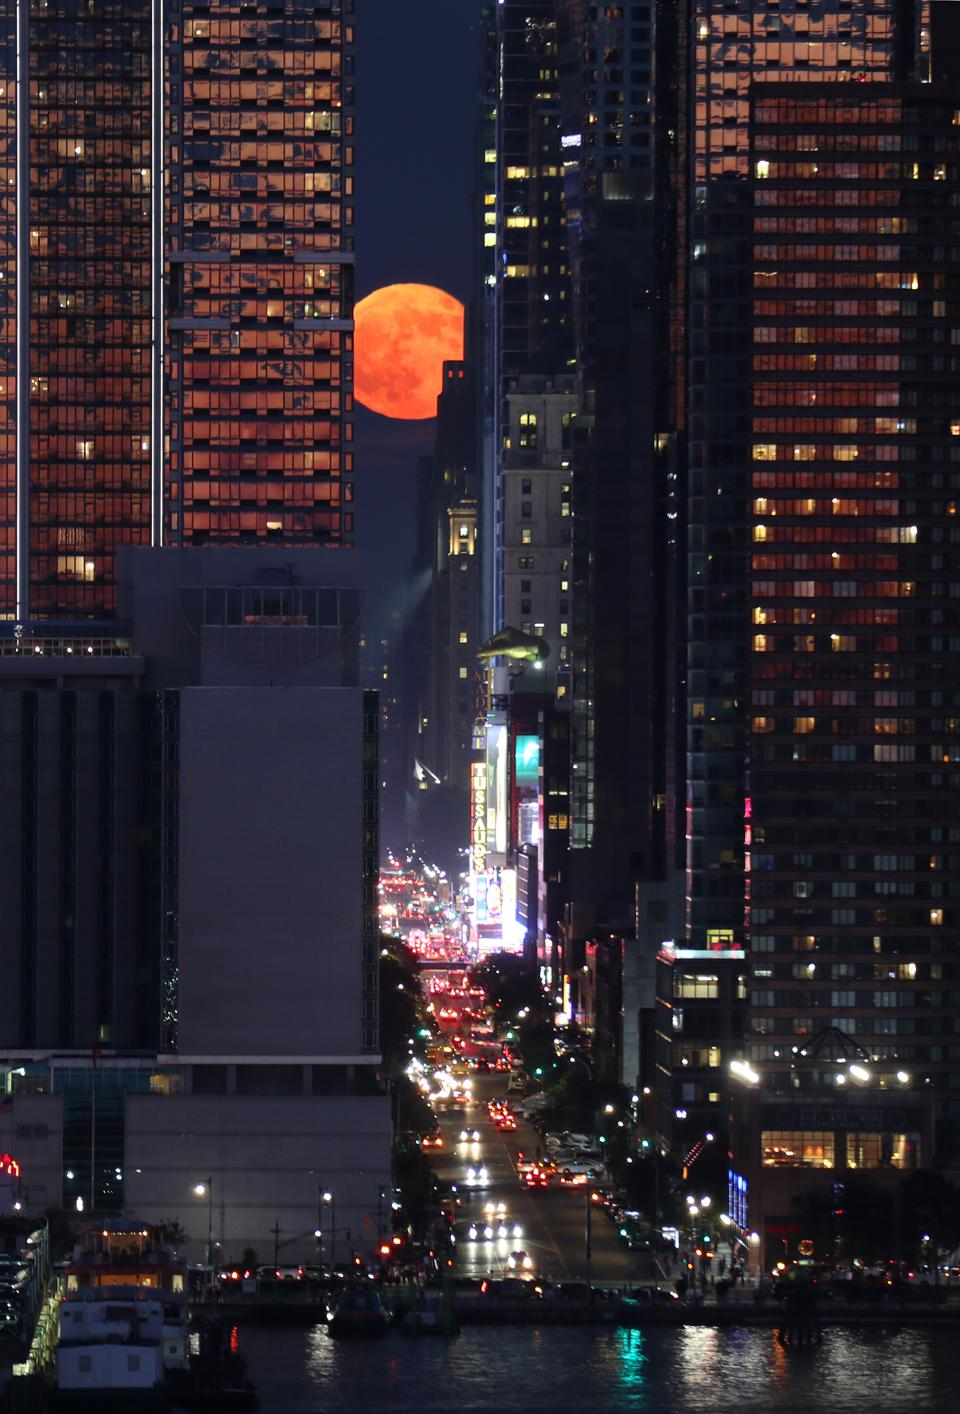 The Strawberry Moon rises above 42nd Street in New York City on June 28, 2018, as seen from Weehawken, New Jersey. (Photo by Gary Hershorn/Getty Images)